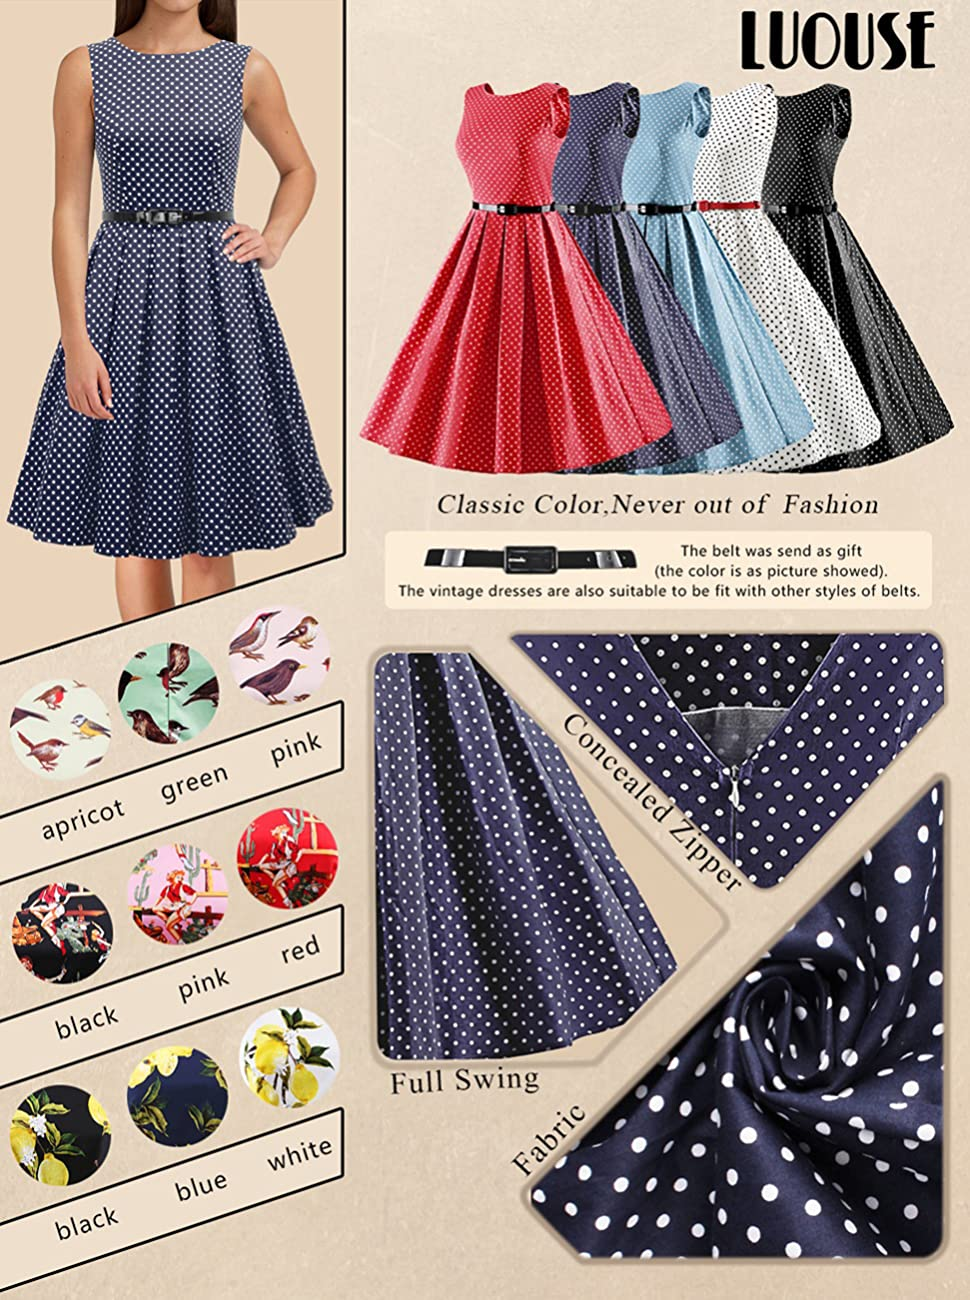 7ba30cd5bf0 Women s Vintage 1950s Sleeveless Dress with Boat Neck Inspired Rockabilly  Swing Dress